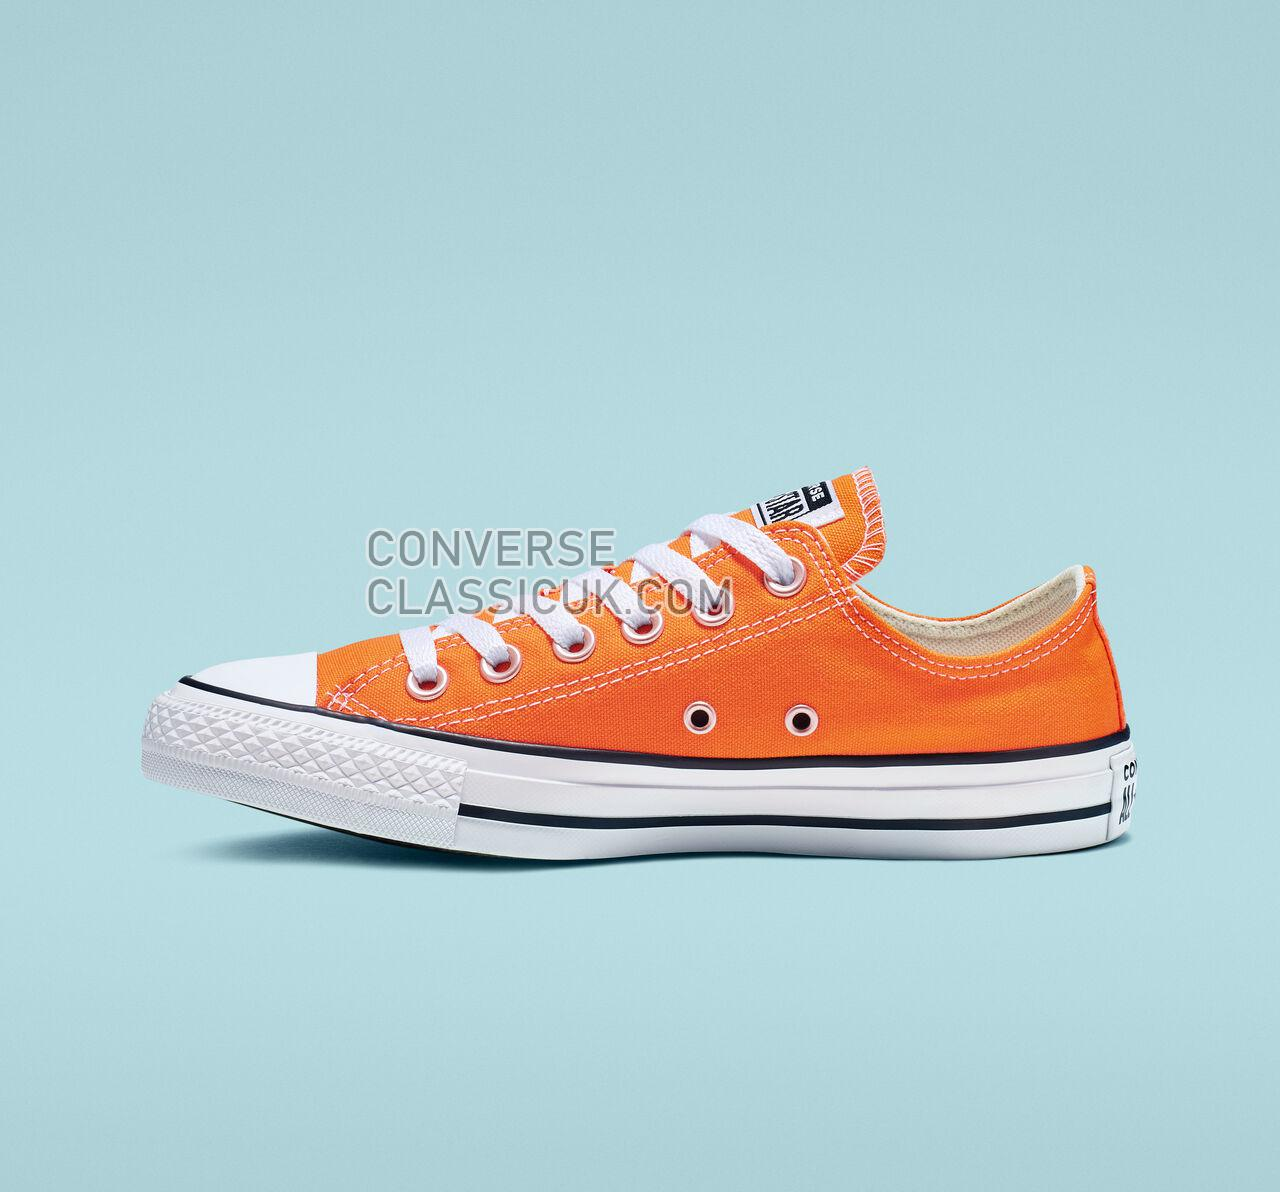 Converse Chuck Taylor All Star Seasonal Color Low Top Mens Womens Unisex 164937F Orange Rind Shoes